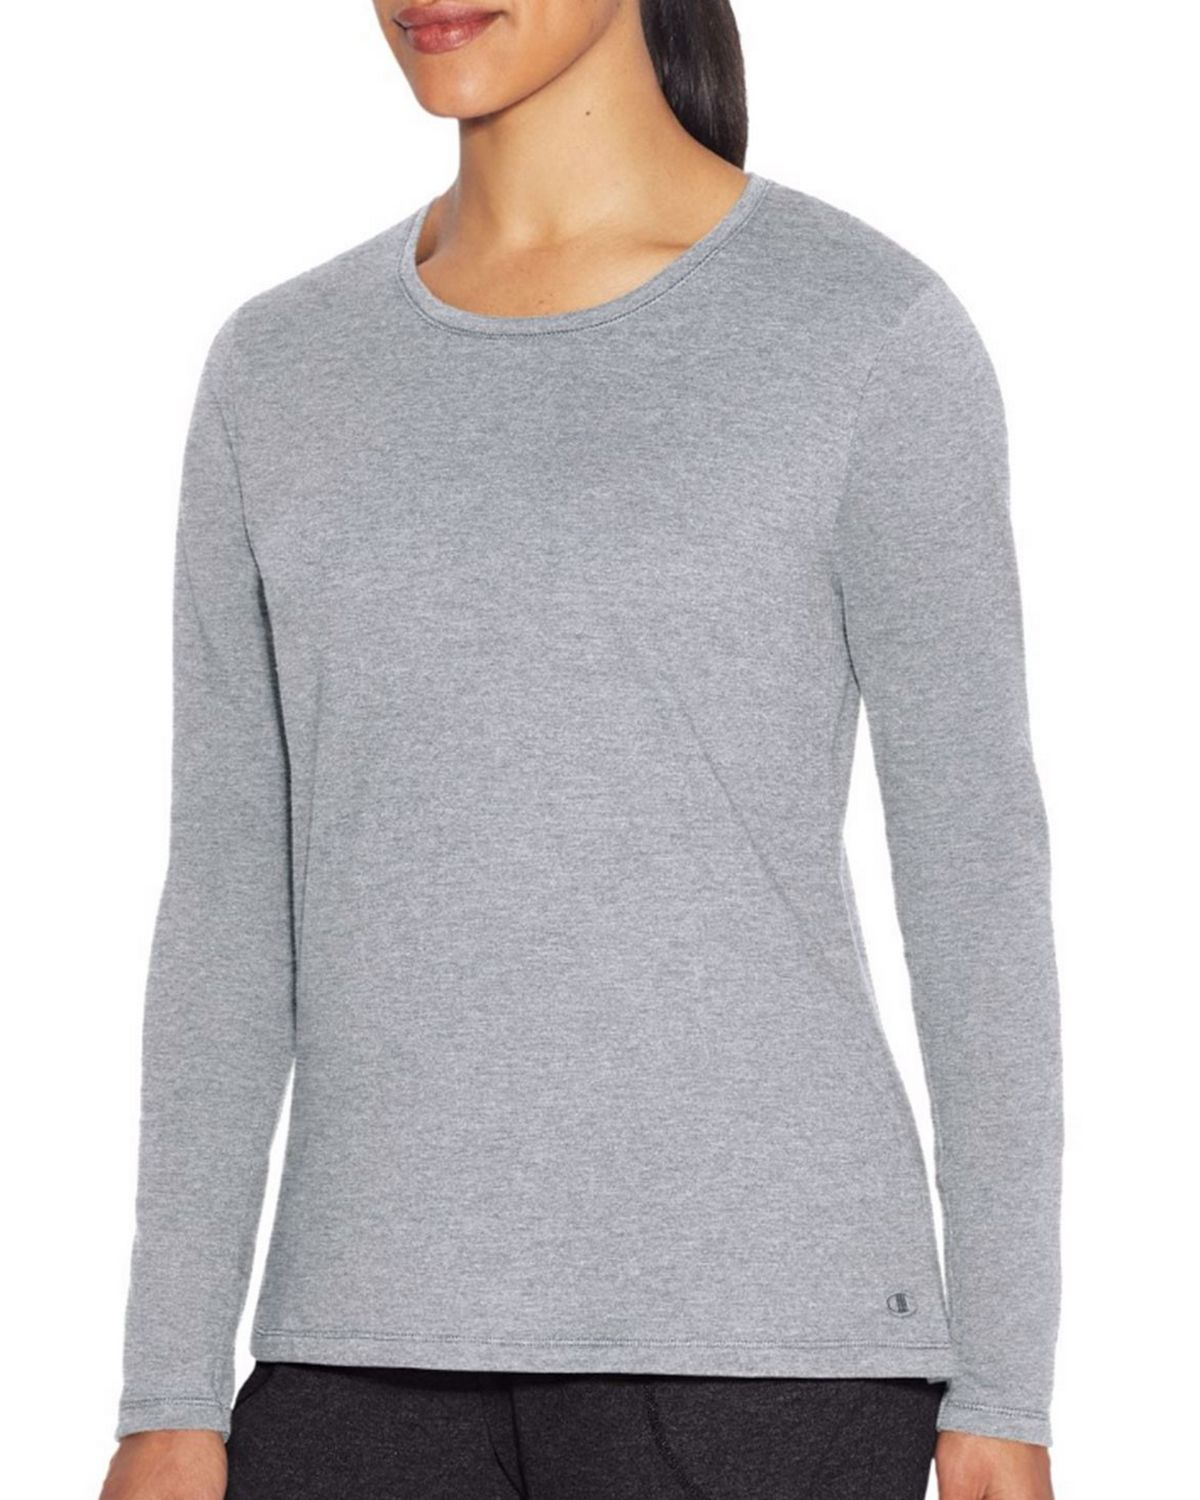 Champion W29563 Womens Vapor Tee - Oxford Grey Heather - S W29563